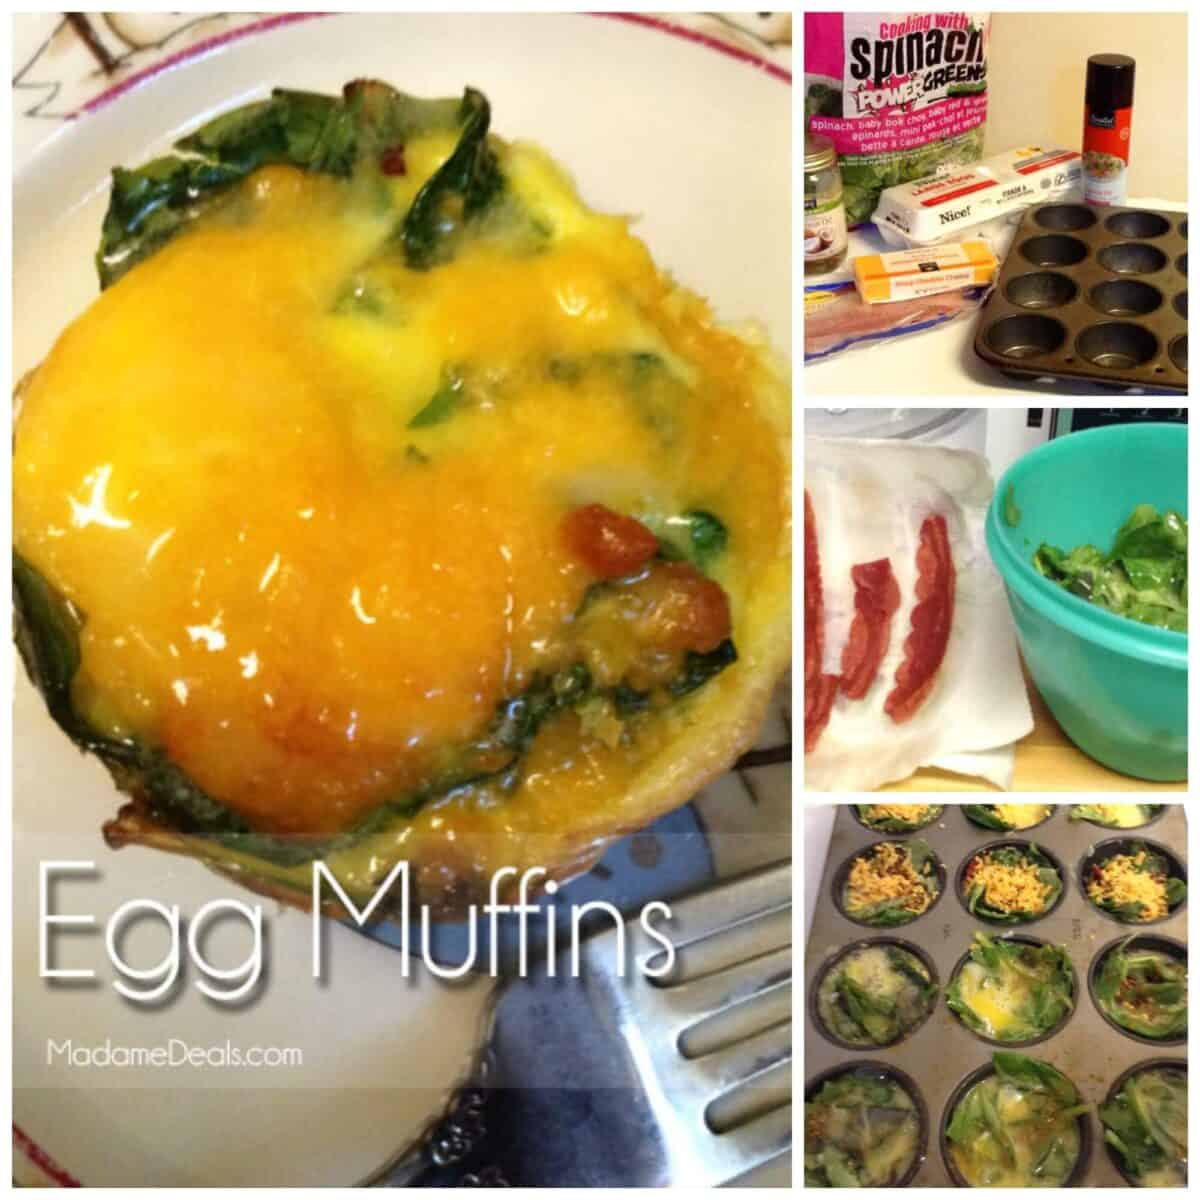 egg muffins recipe collage